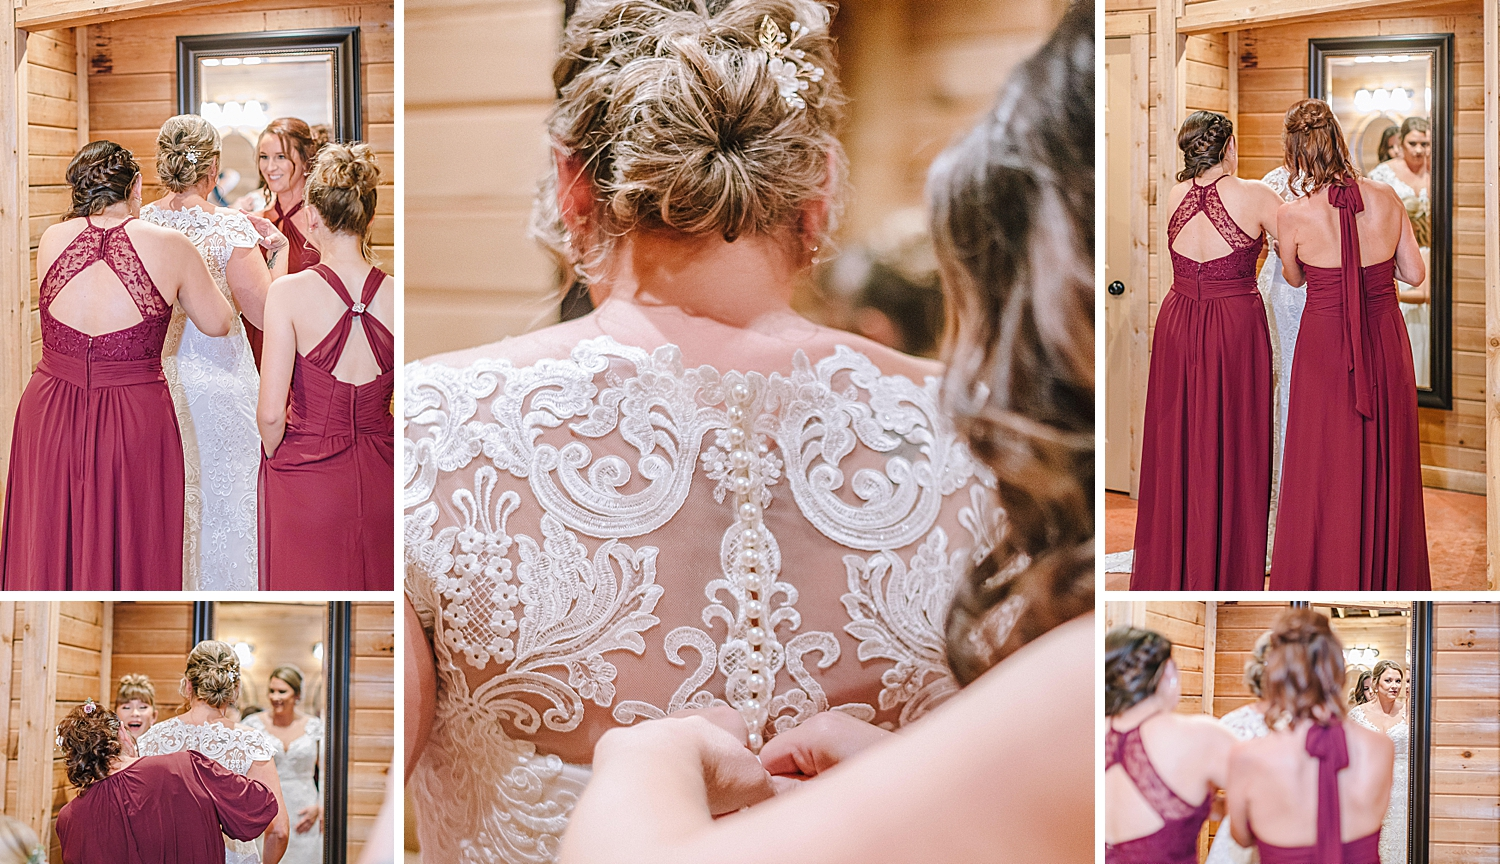 Geronimo-Oaks-Wedding-Venue-Seguin-Texas-Elegant-Navy-Burgundy-Wedding-Carly-Barton-Photography_0013.jpg